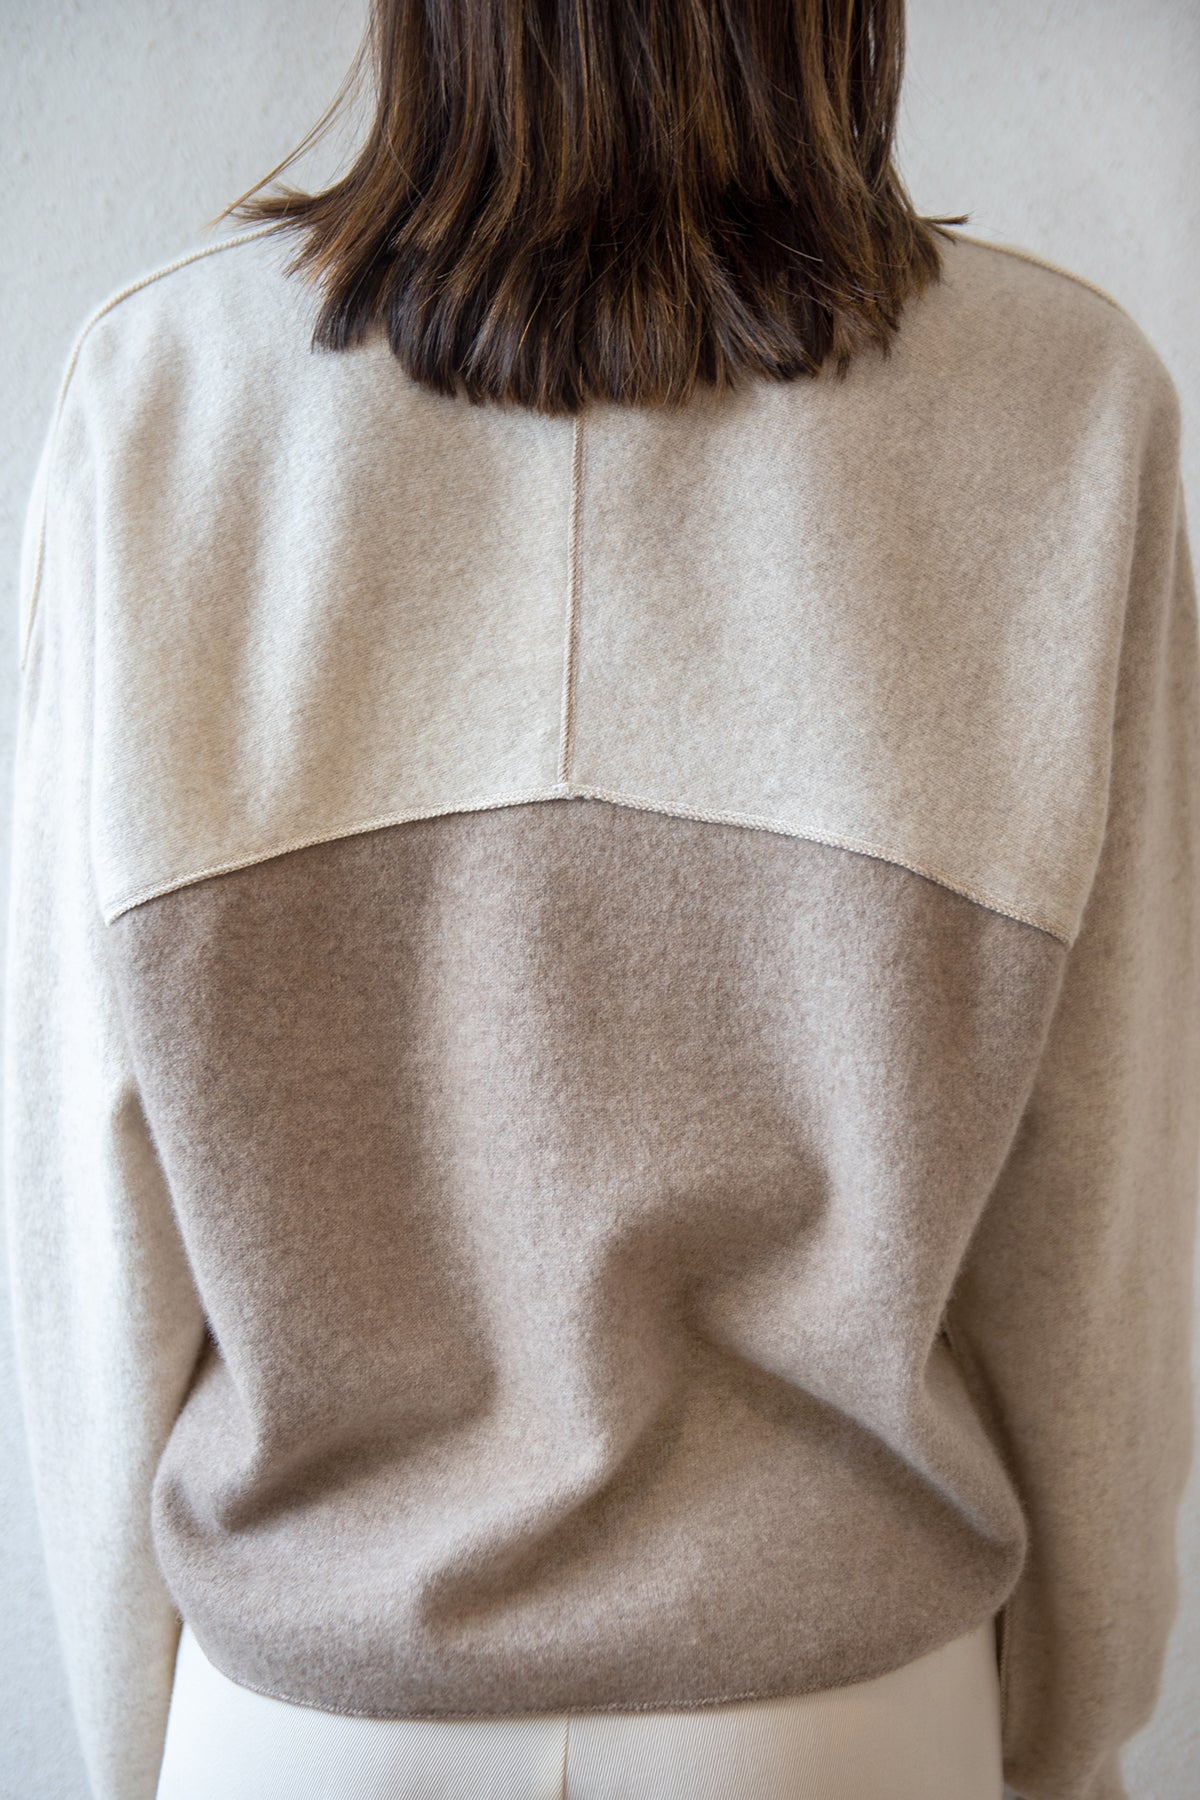 Dušan - patchwork sweatshirt, cream and brown